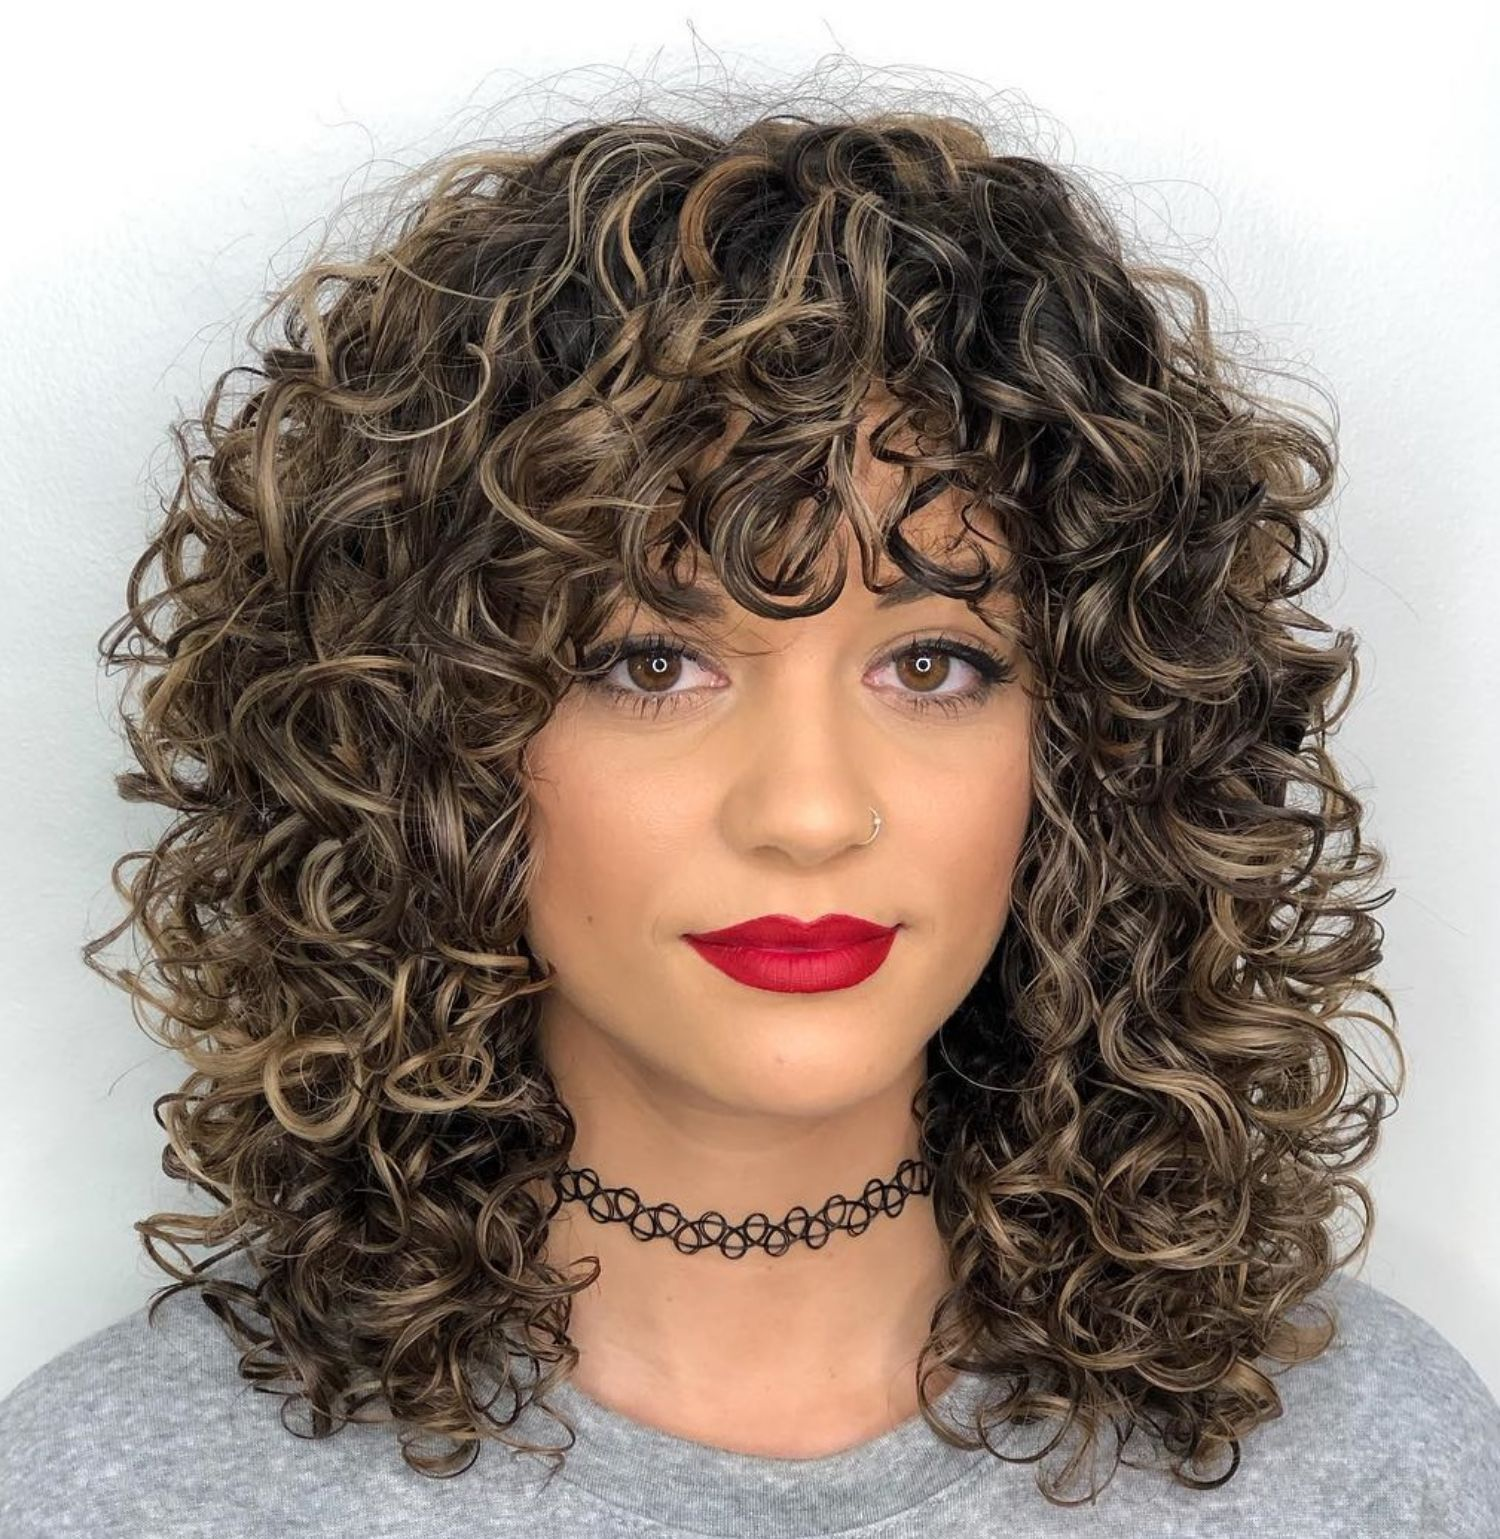 Mid Length Curly Hairstyle With Curly Bangs Mid Length Curly Hairstyles Curly Hair Styles Naturally Medium Curly Hair Styles